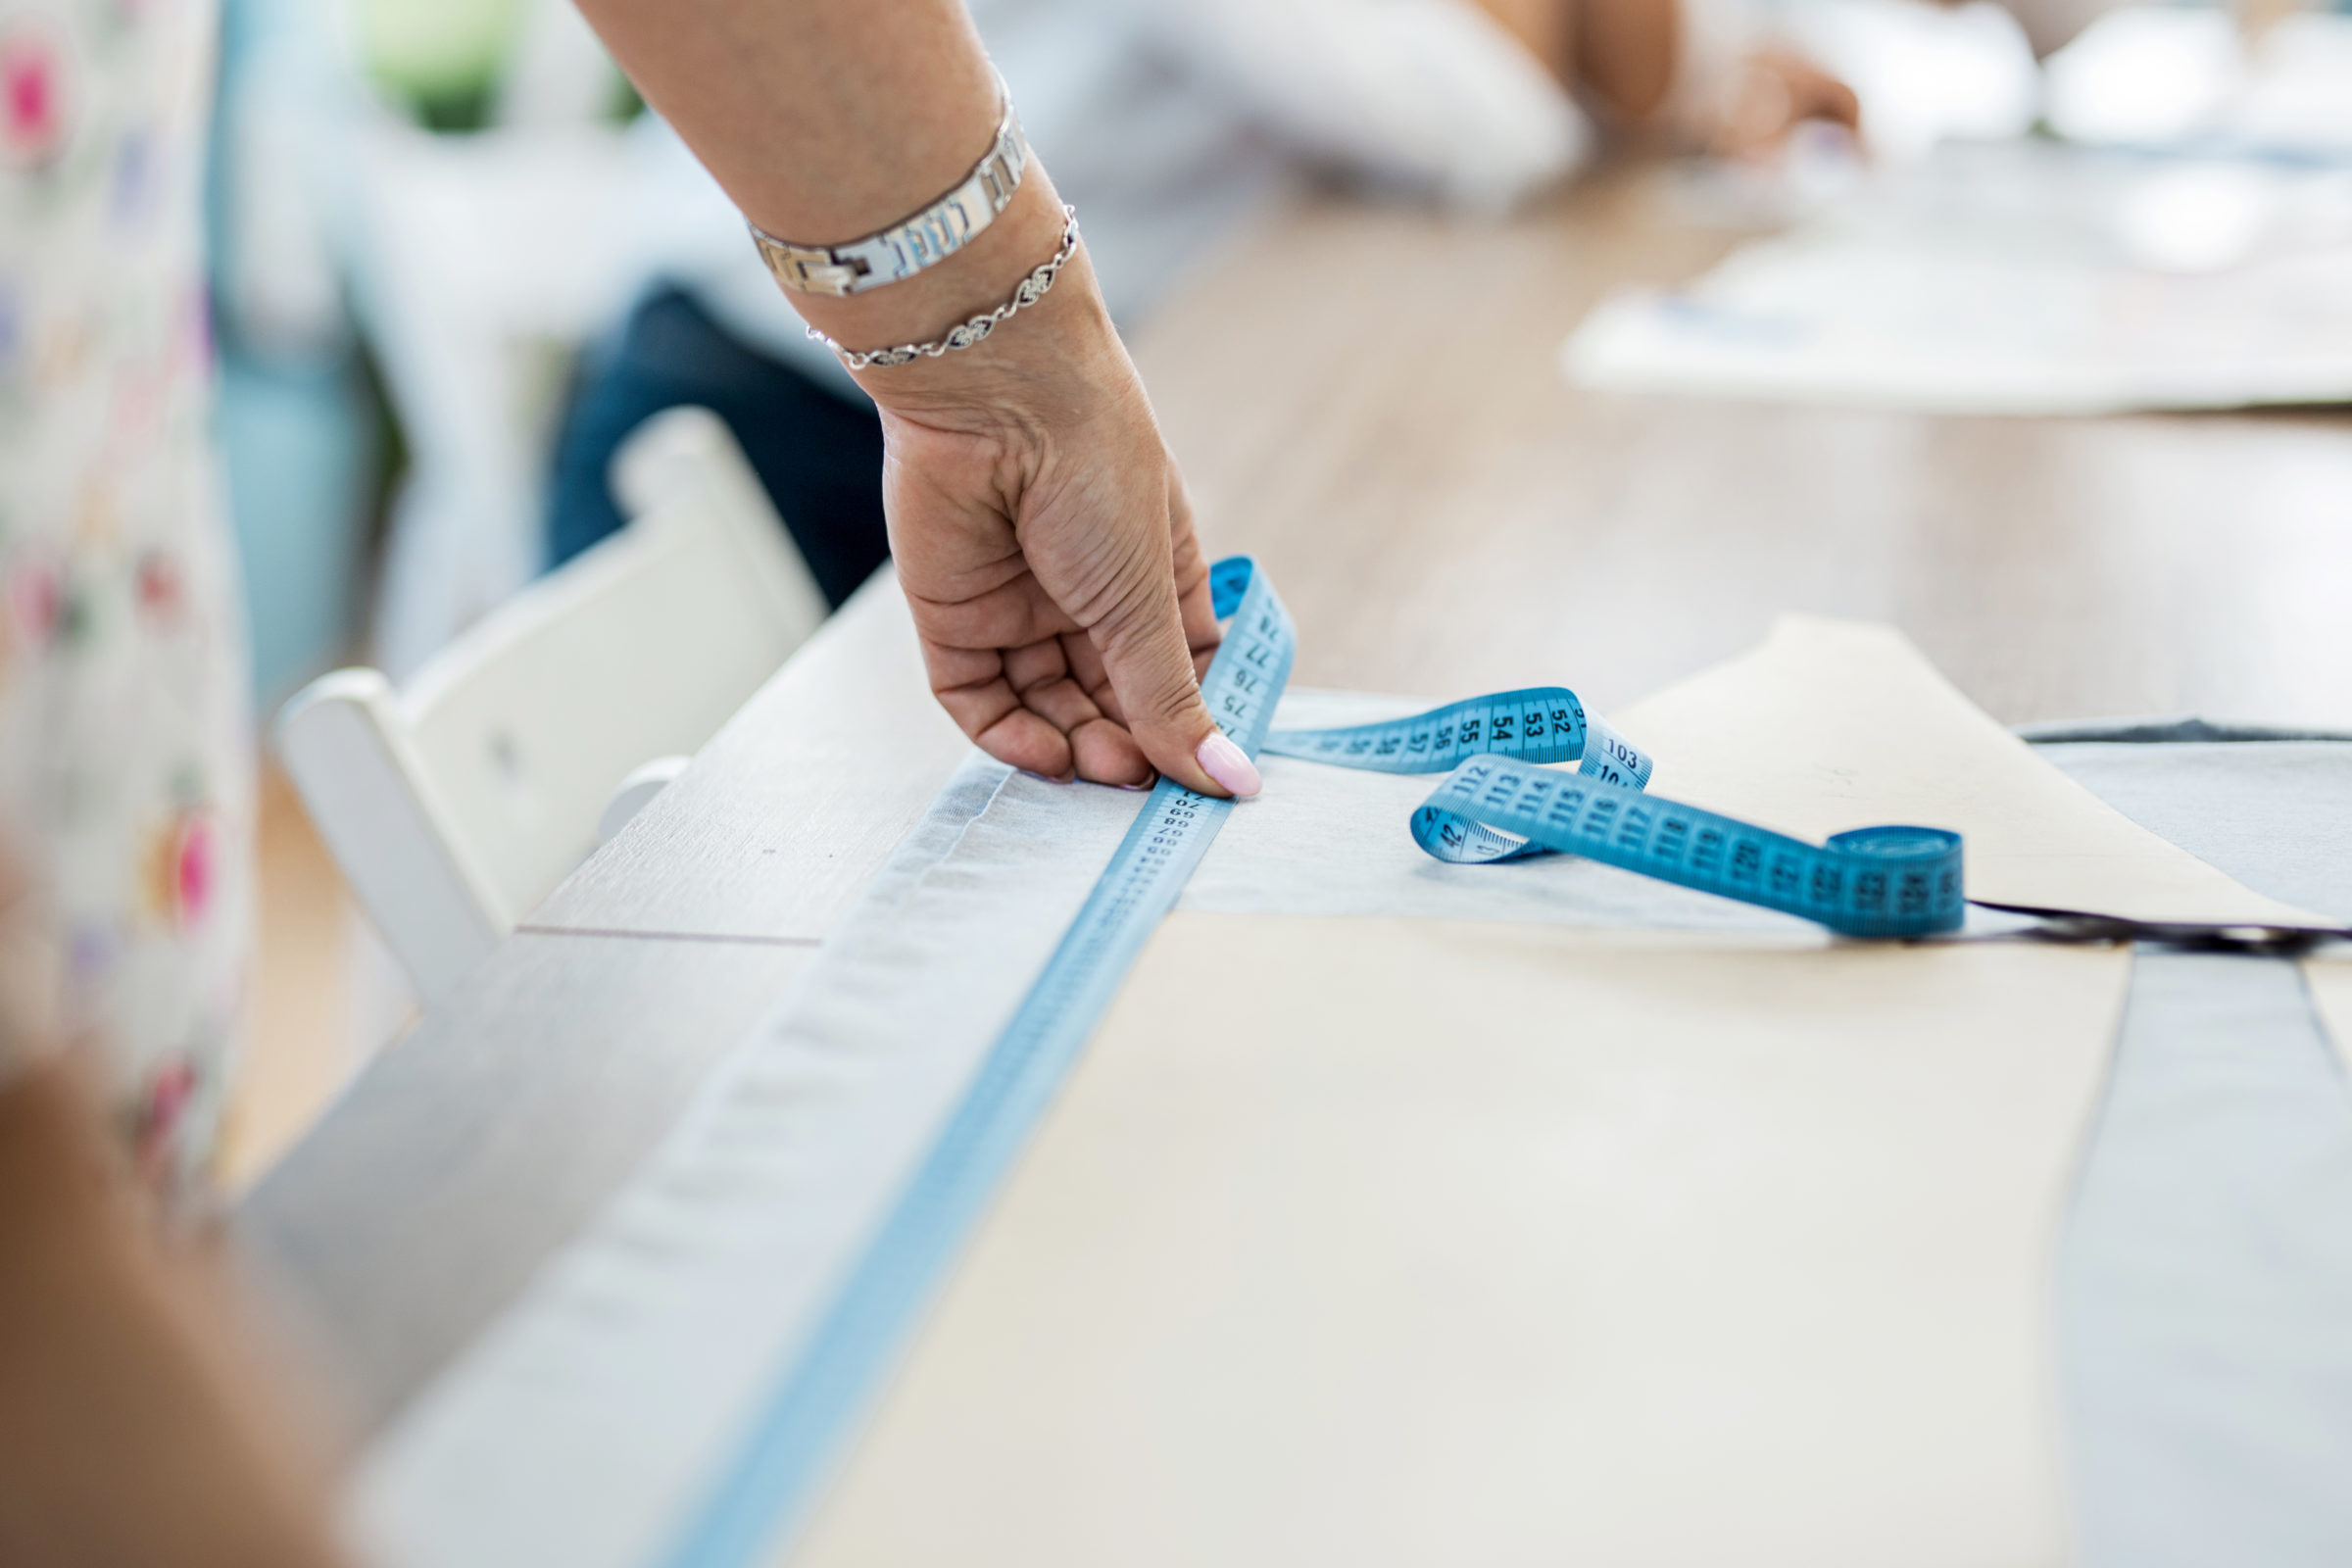 a woman with a bracelet is measuring fabric fashio XRAQ8L9